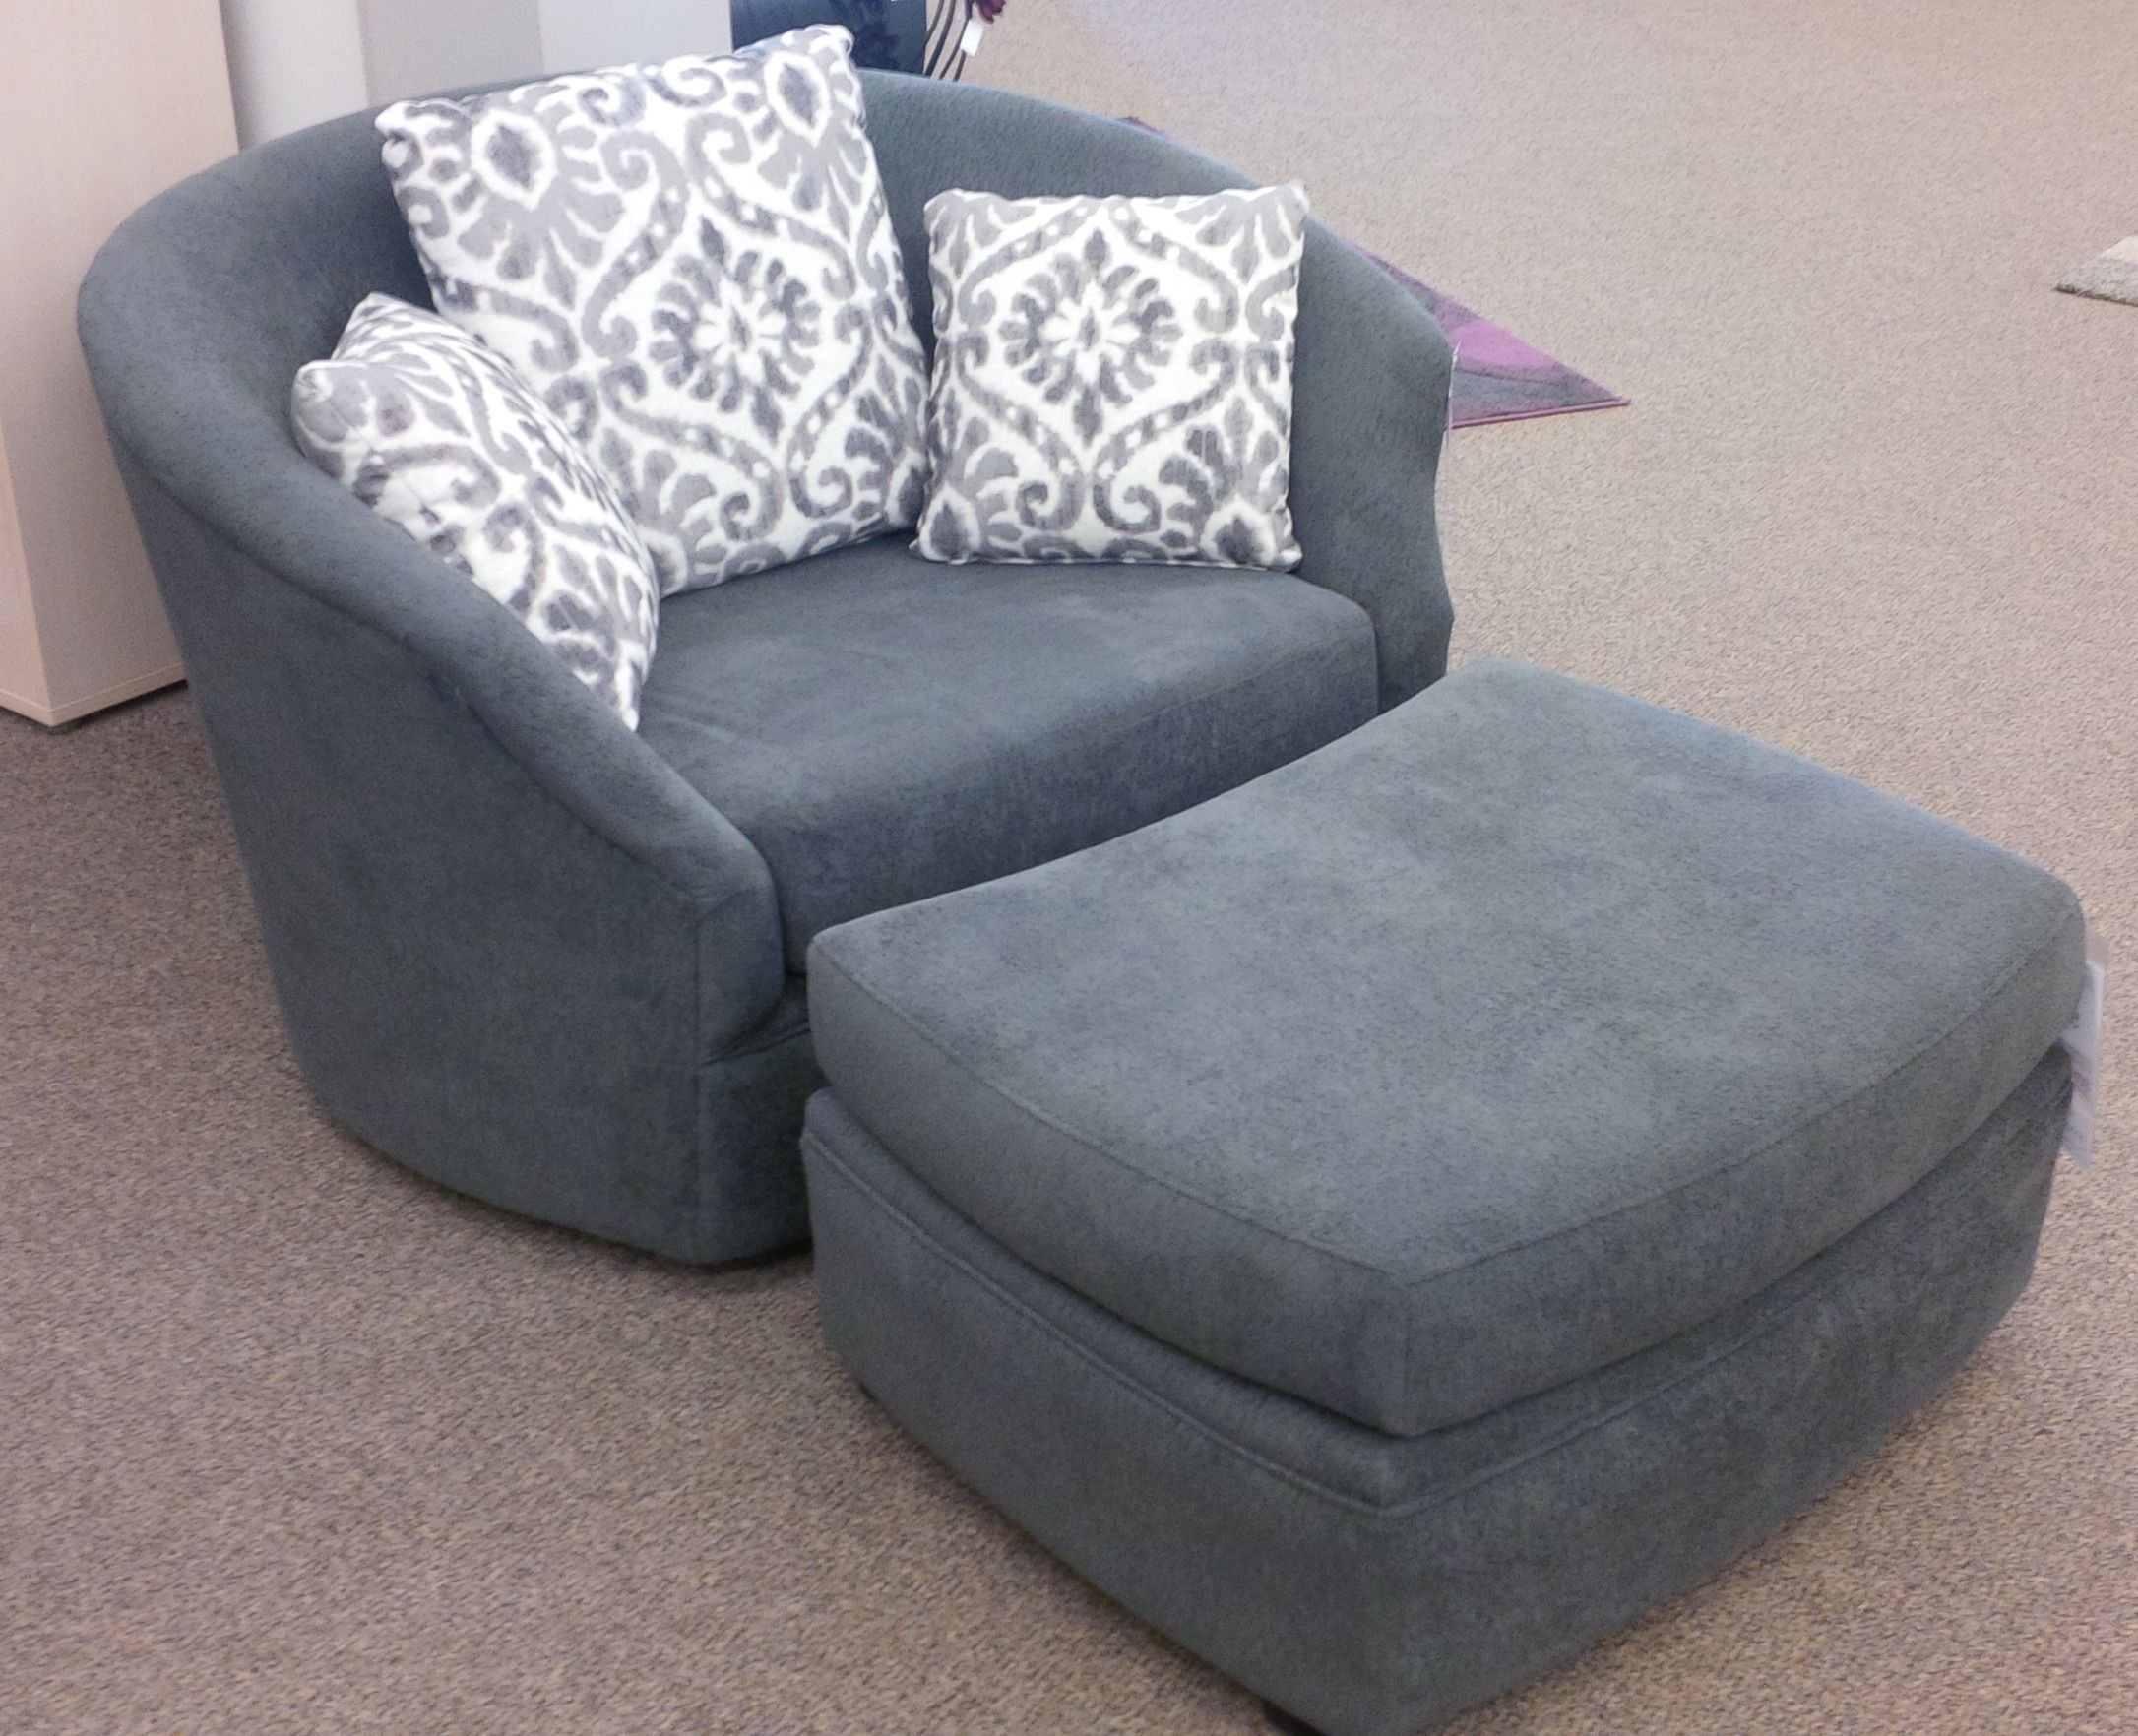 Comfiest Chair Wouldnt You Love To Curl Up In This Big Comfy Chair Its